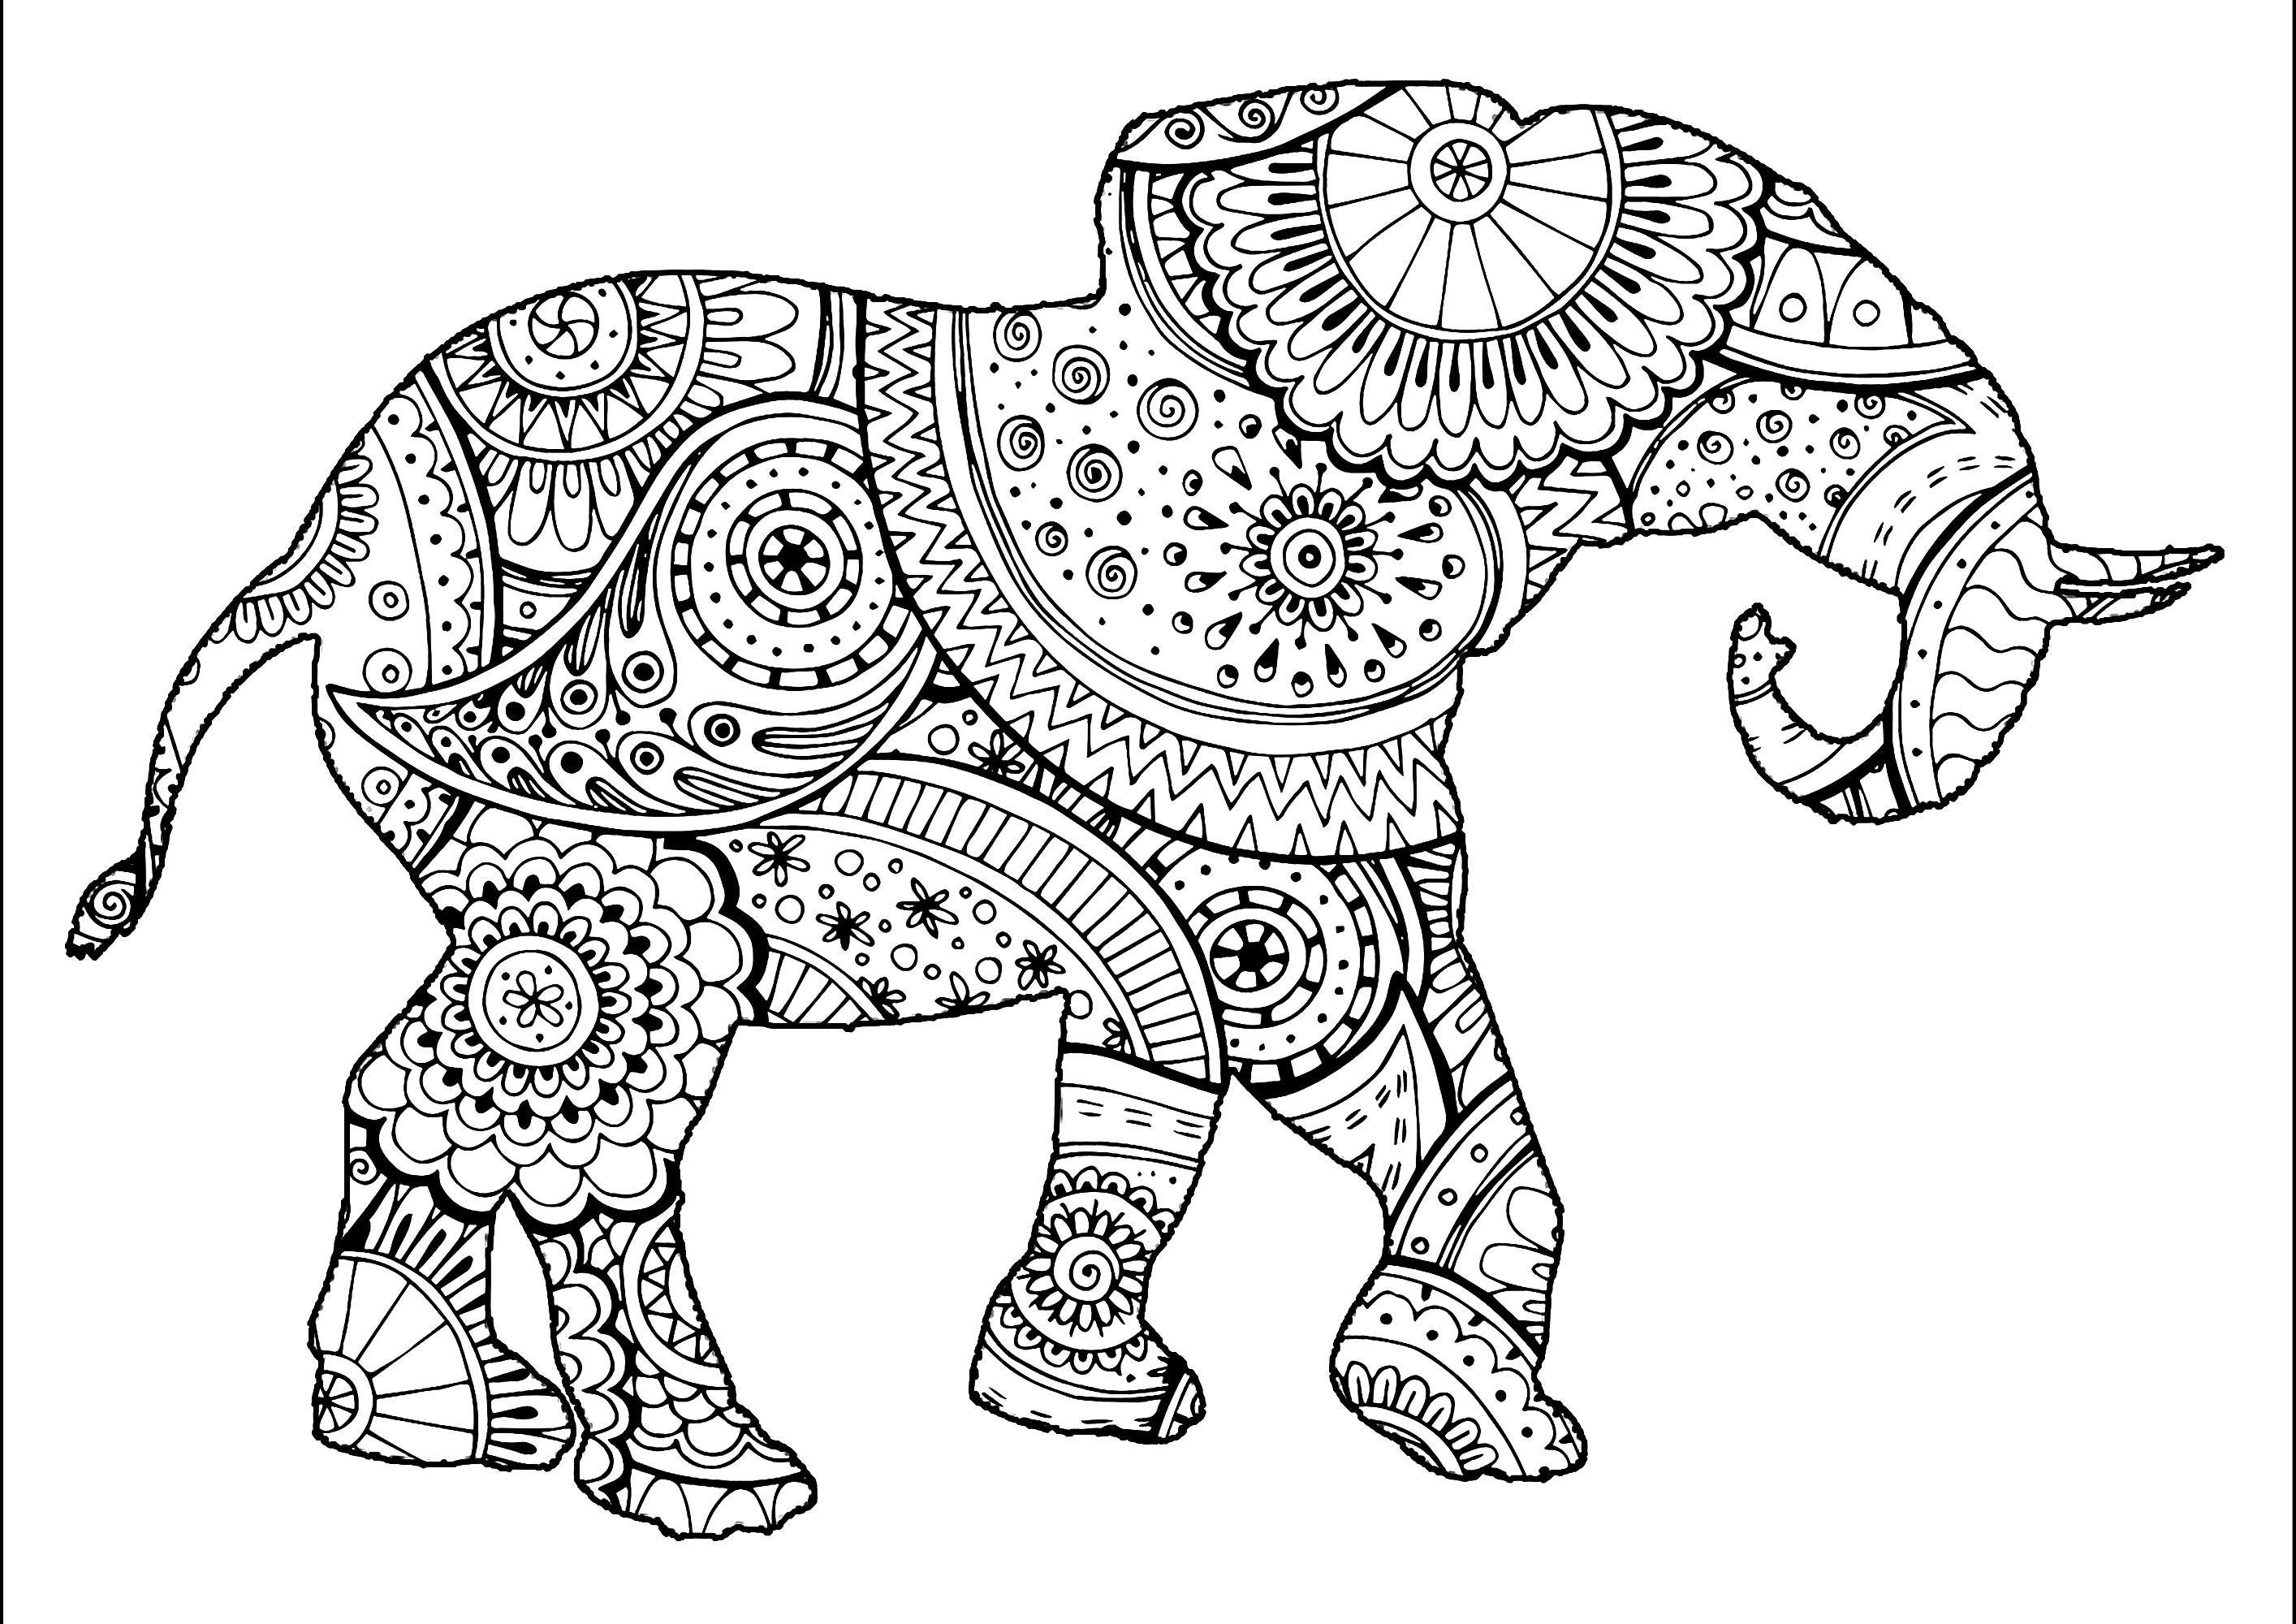 colouring pictures of elephant elephant shape with patterns elephants adult coloring pages of colouring elephant pictures